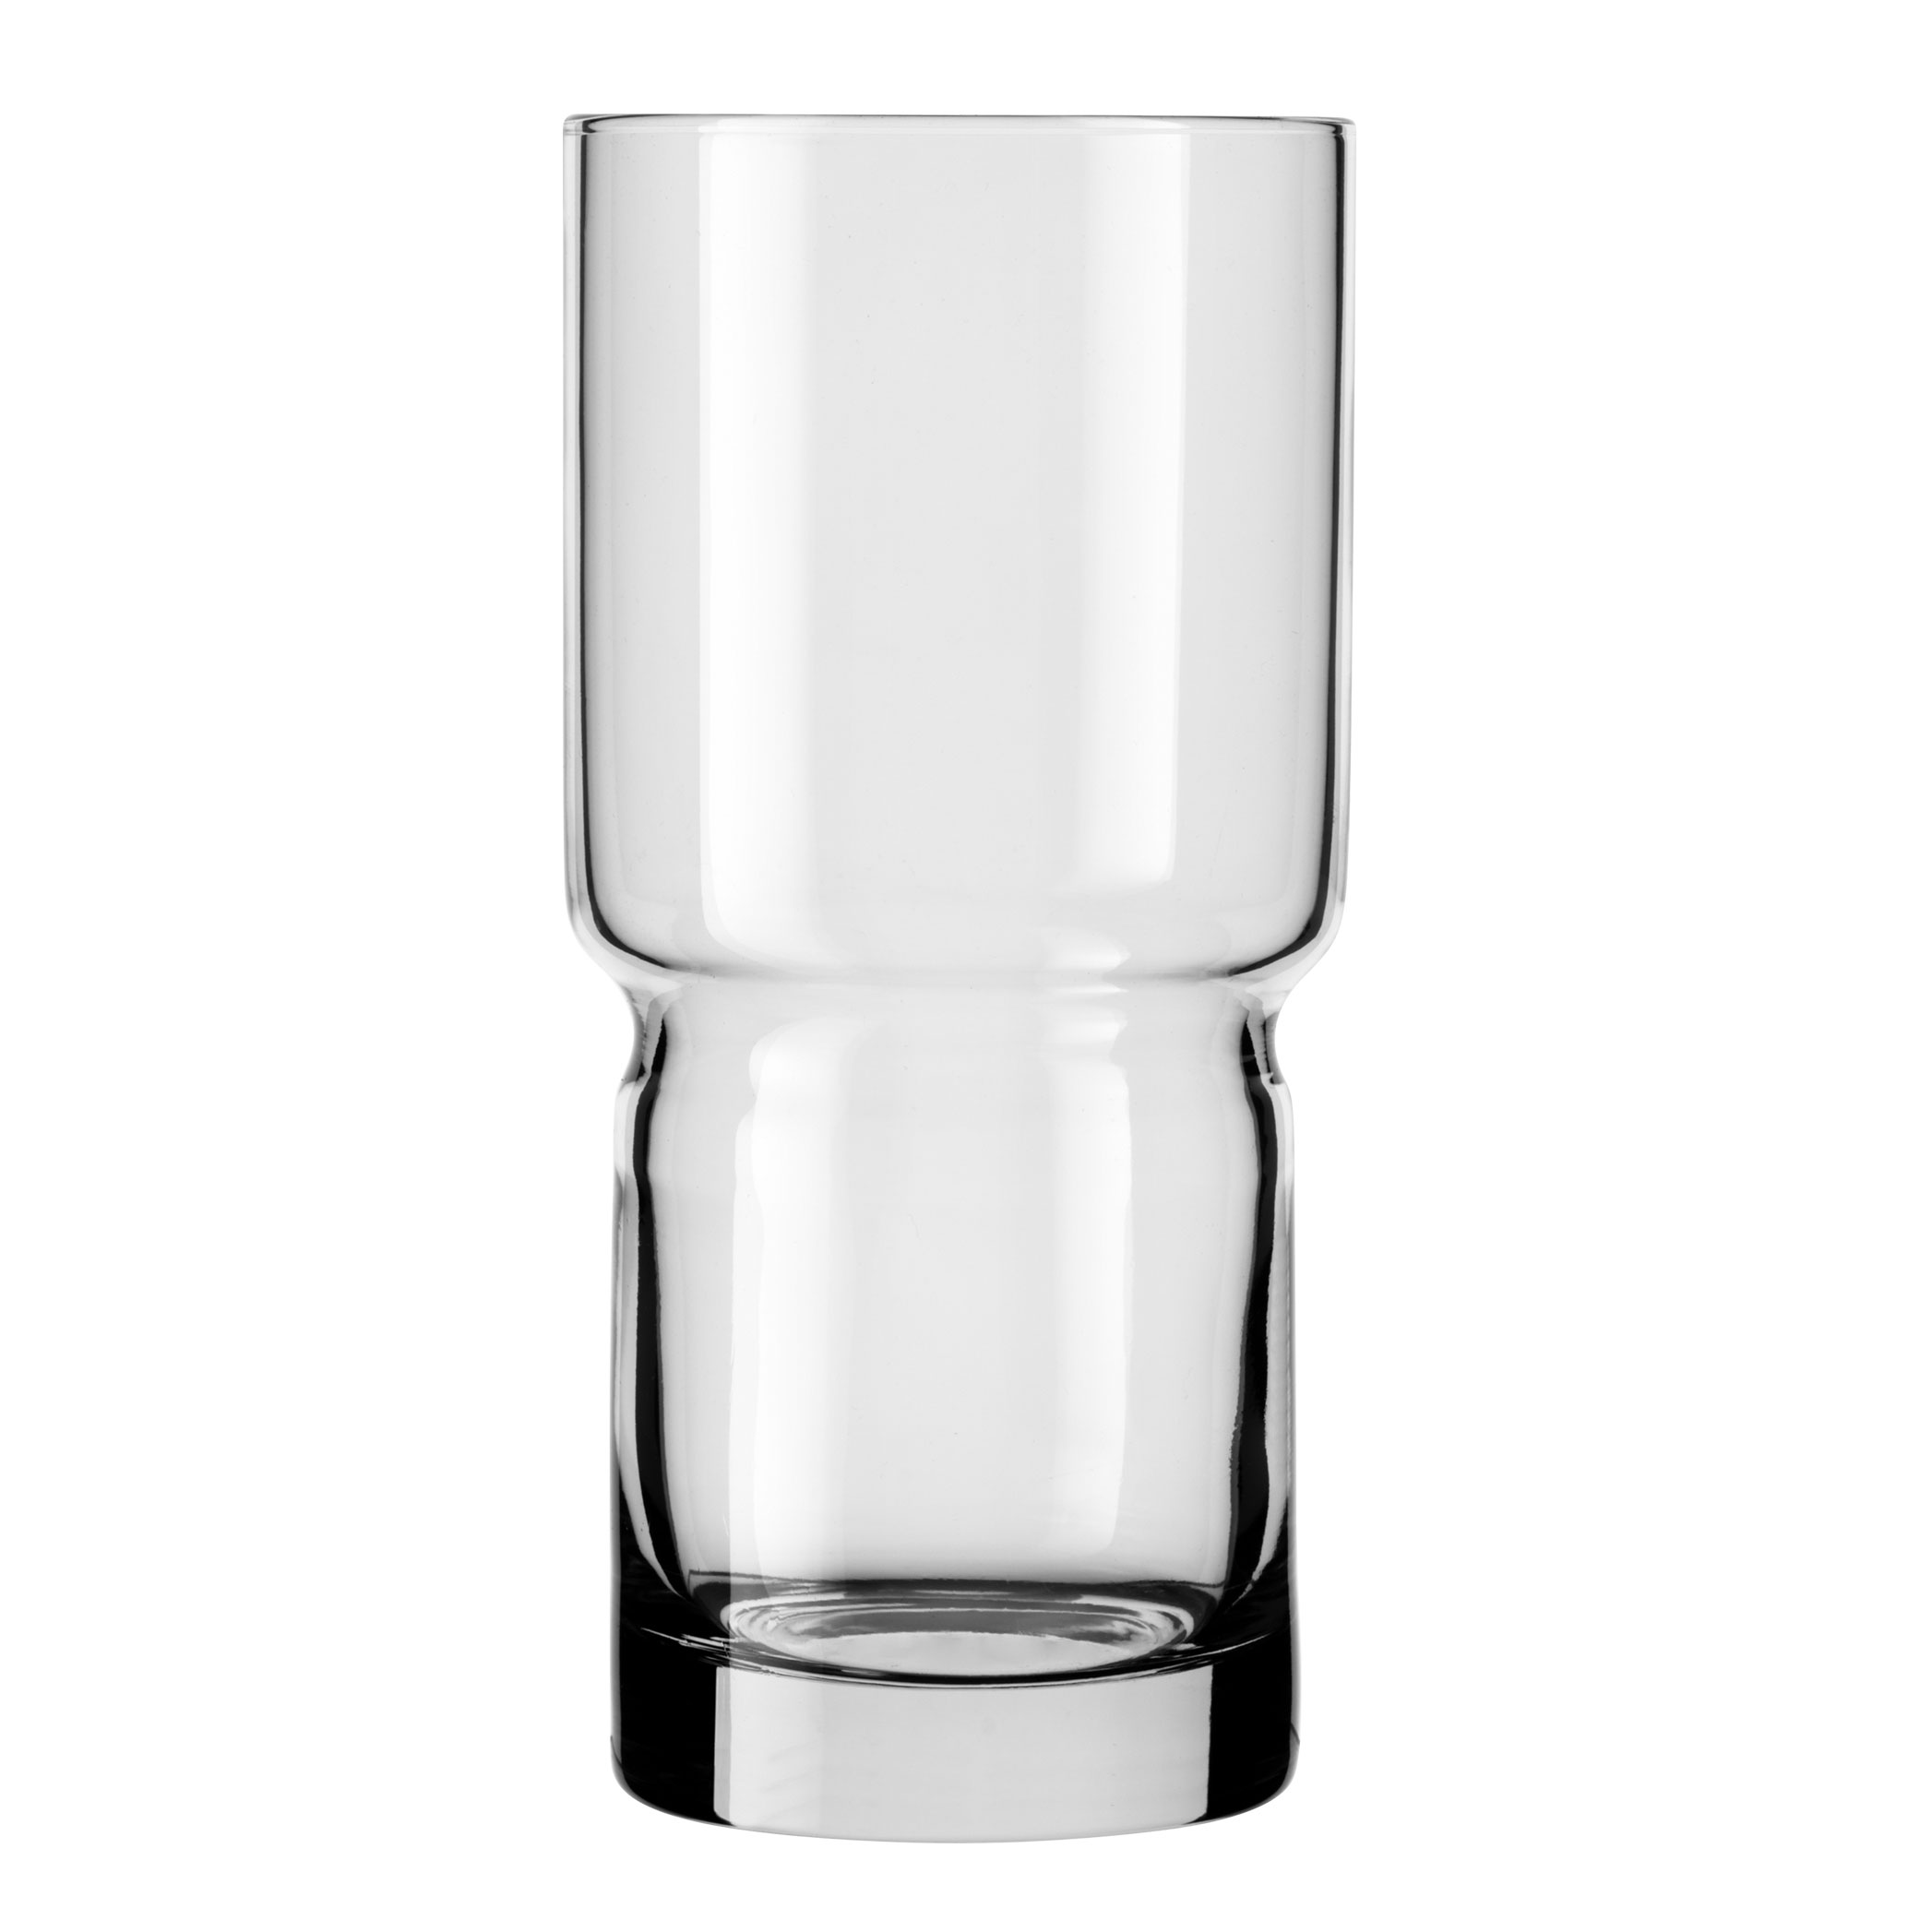 Libbey Glass 12040 glass, cooler